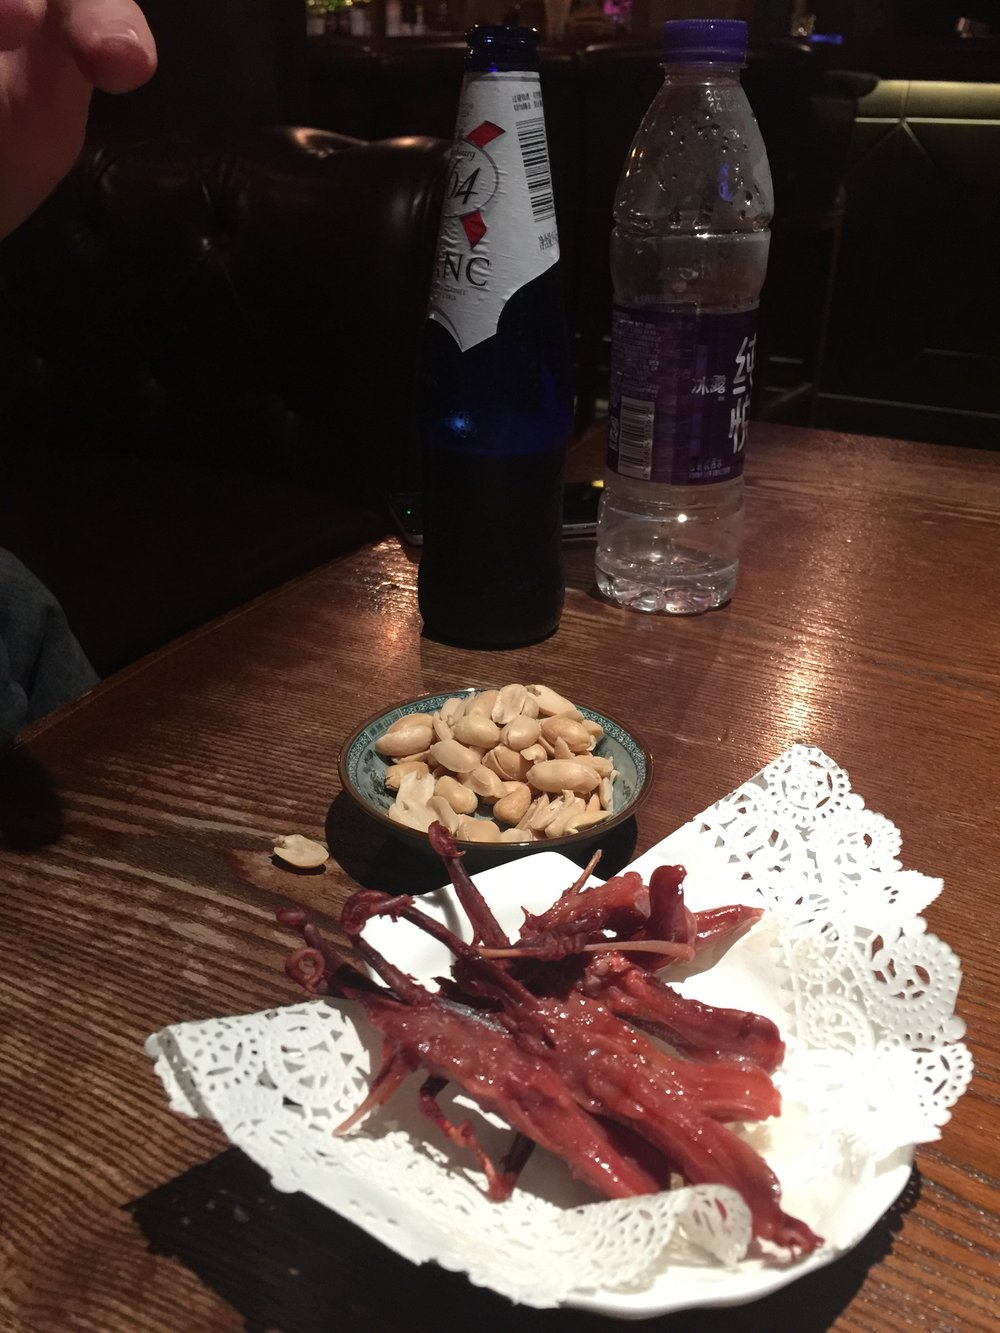 Beer, peanuts and duck tongues. Yep duck tongues.